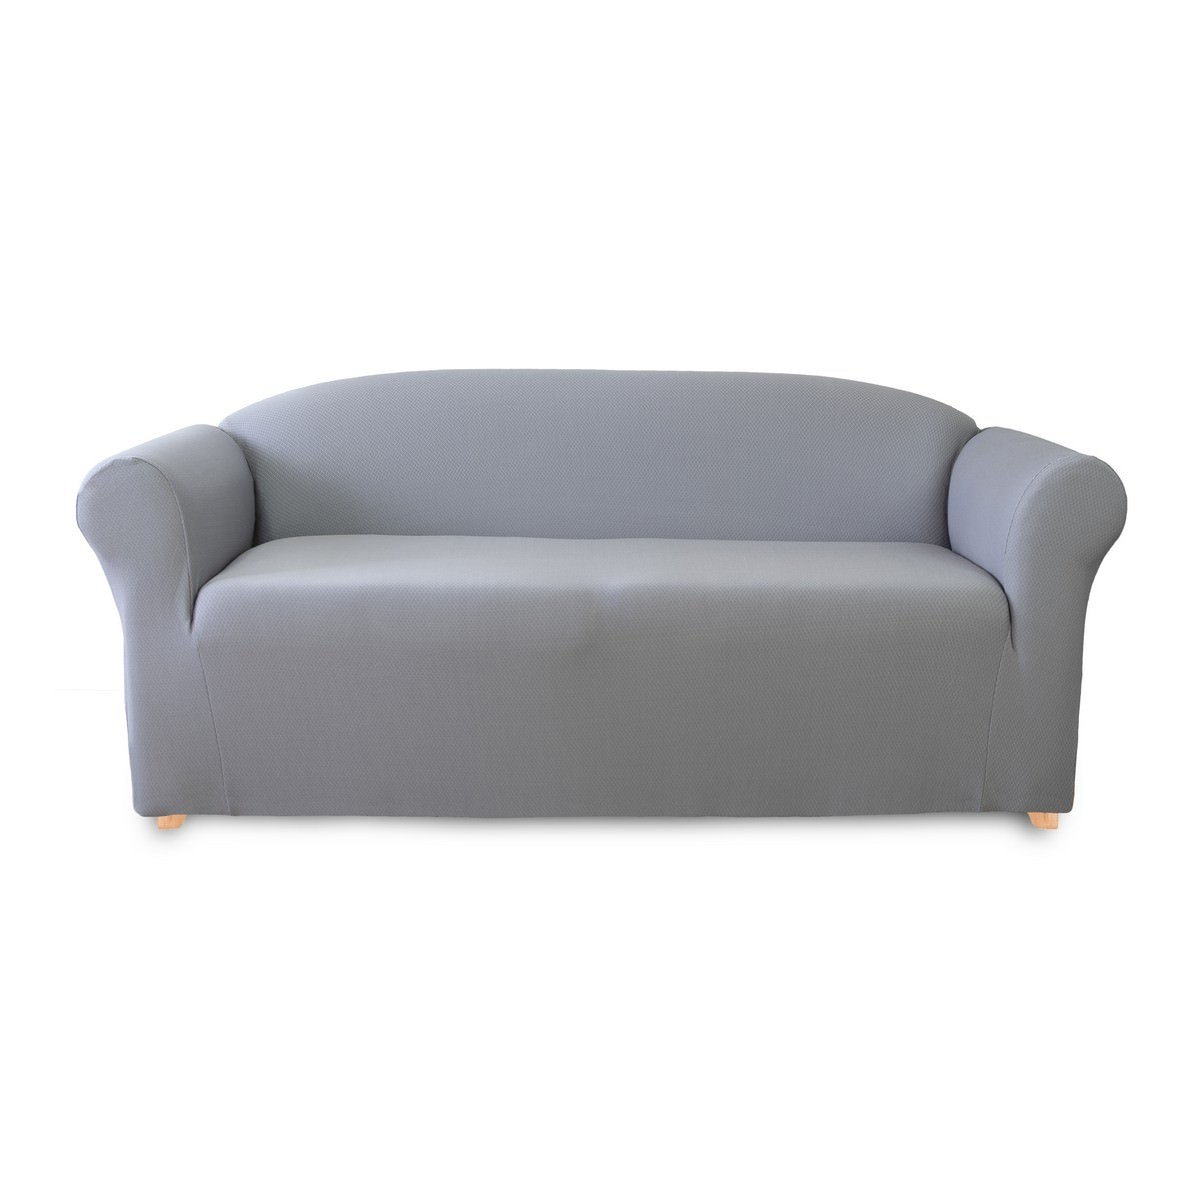 Sure Fit Diamond Sofa Cover, 2 Seater, Silver